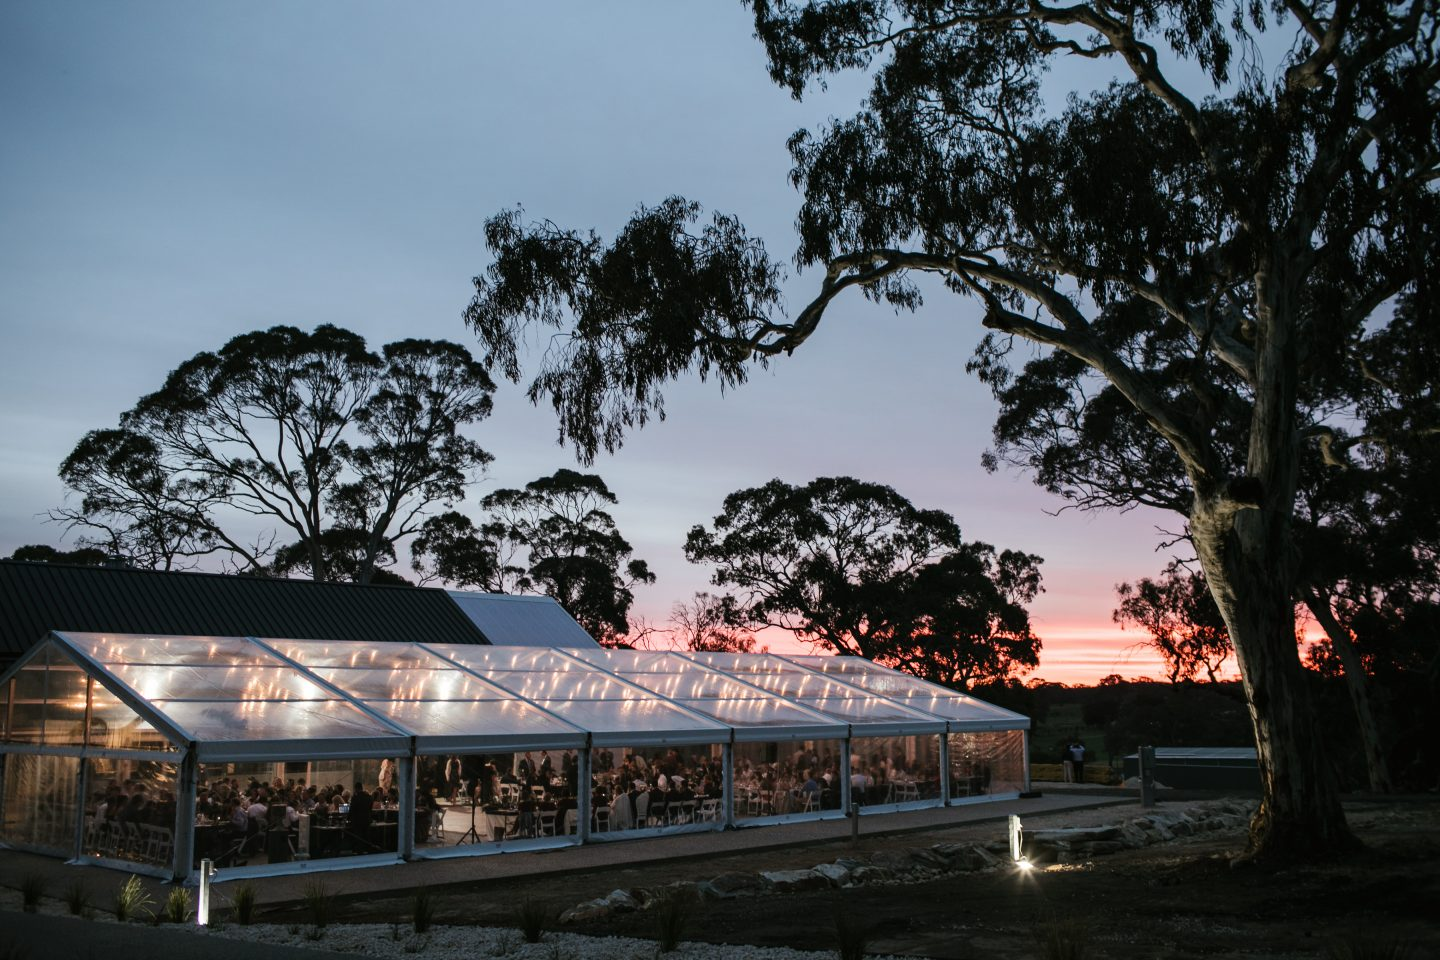 Hire-a-clear-pavilion-15-meters-wide-by-30-meters-long-at-lot-100-Adelaide-at-sunset-with-fairy-lights